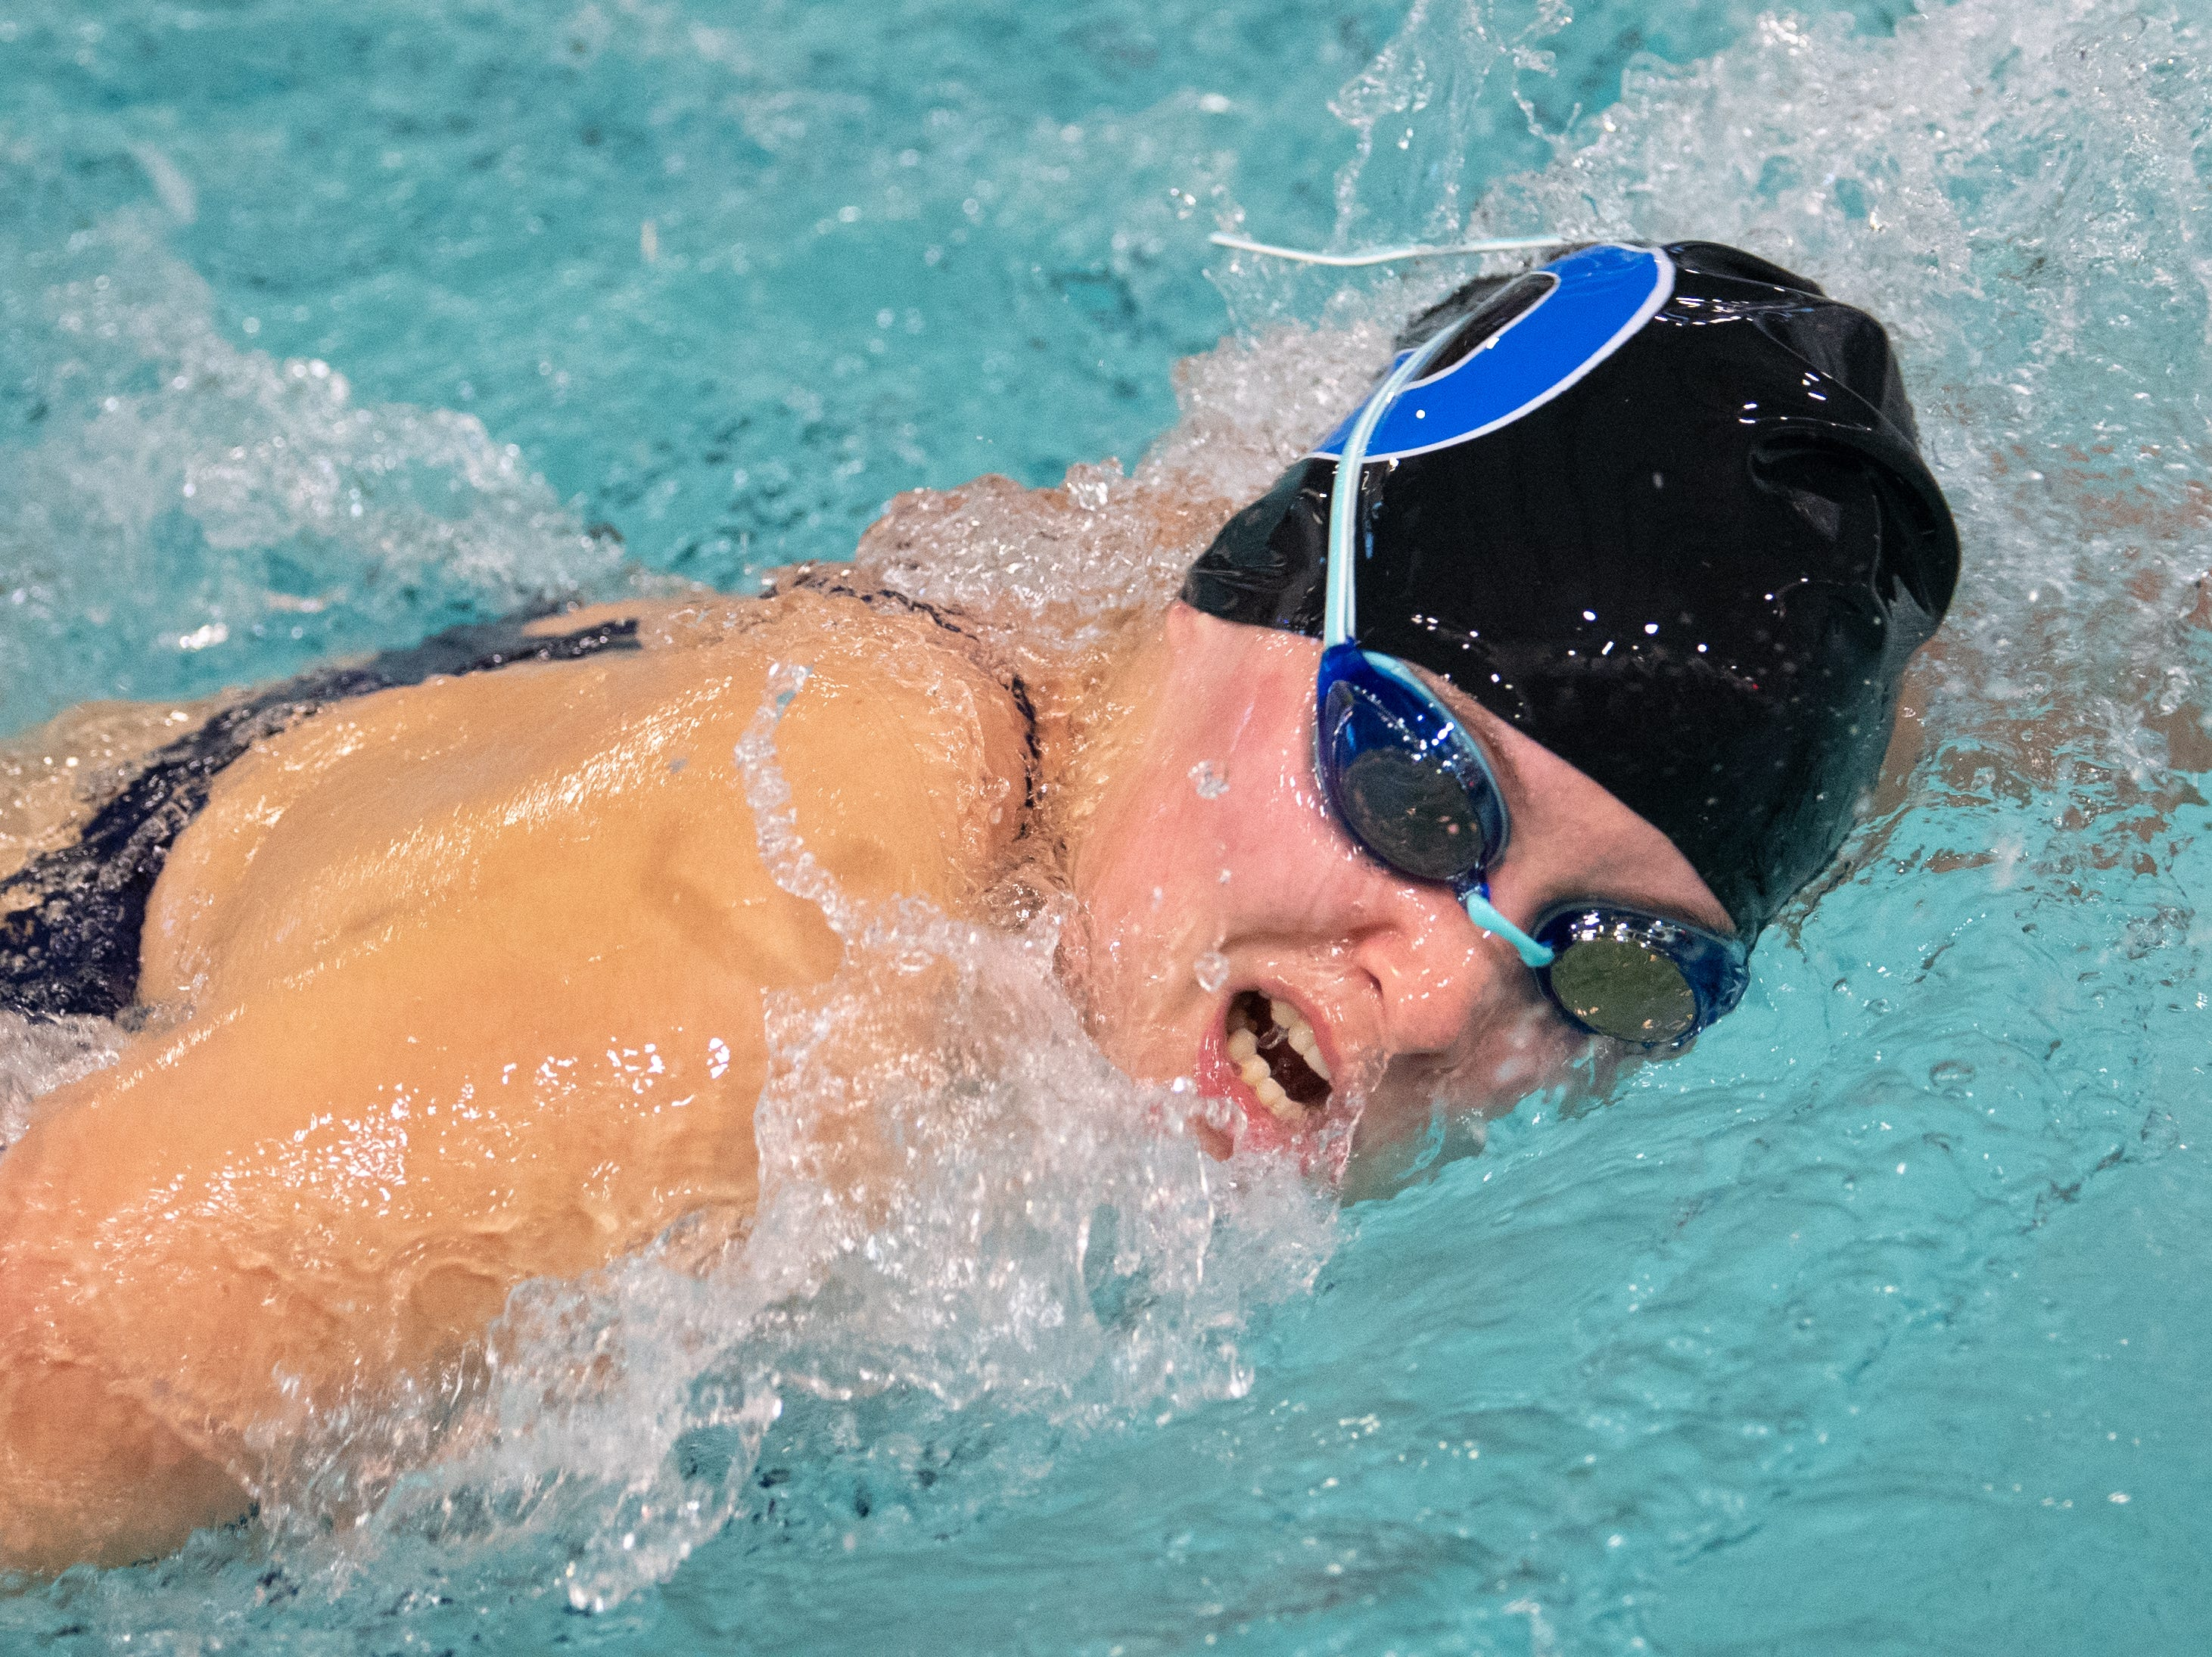 Dallastown's Gillian Lowe competes in the 200 Yard Freestyle during the boys' and girls' swim meet between Dallastown and Central York at Dallastown Area High School, January 10, 2019. The Panthers defeated the Wildcats 93 to 77 and the Lady Panthers defeated the Lady Wildcats 96 to 74.